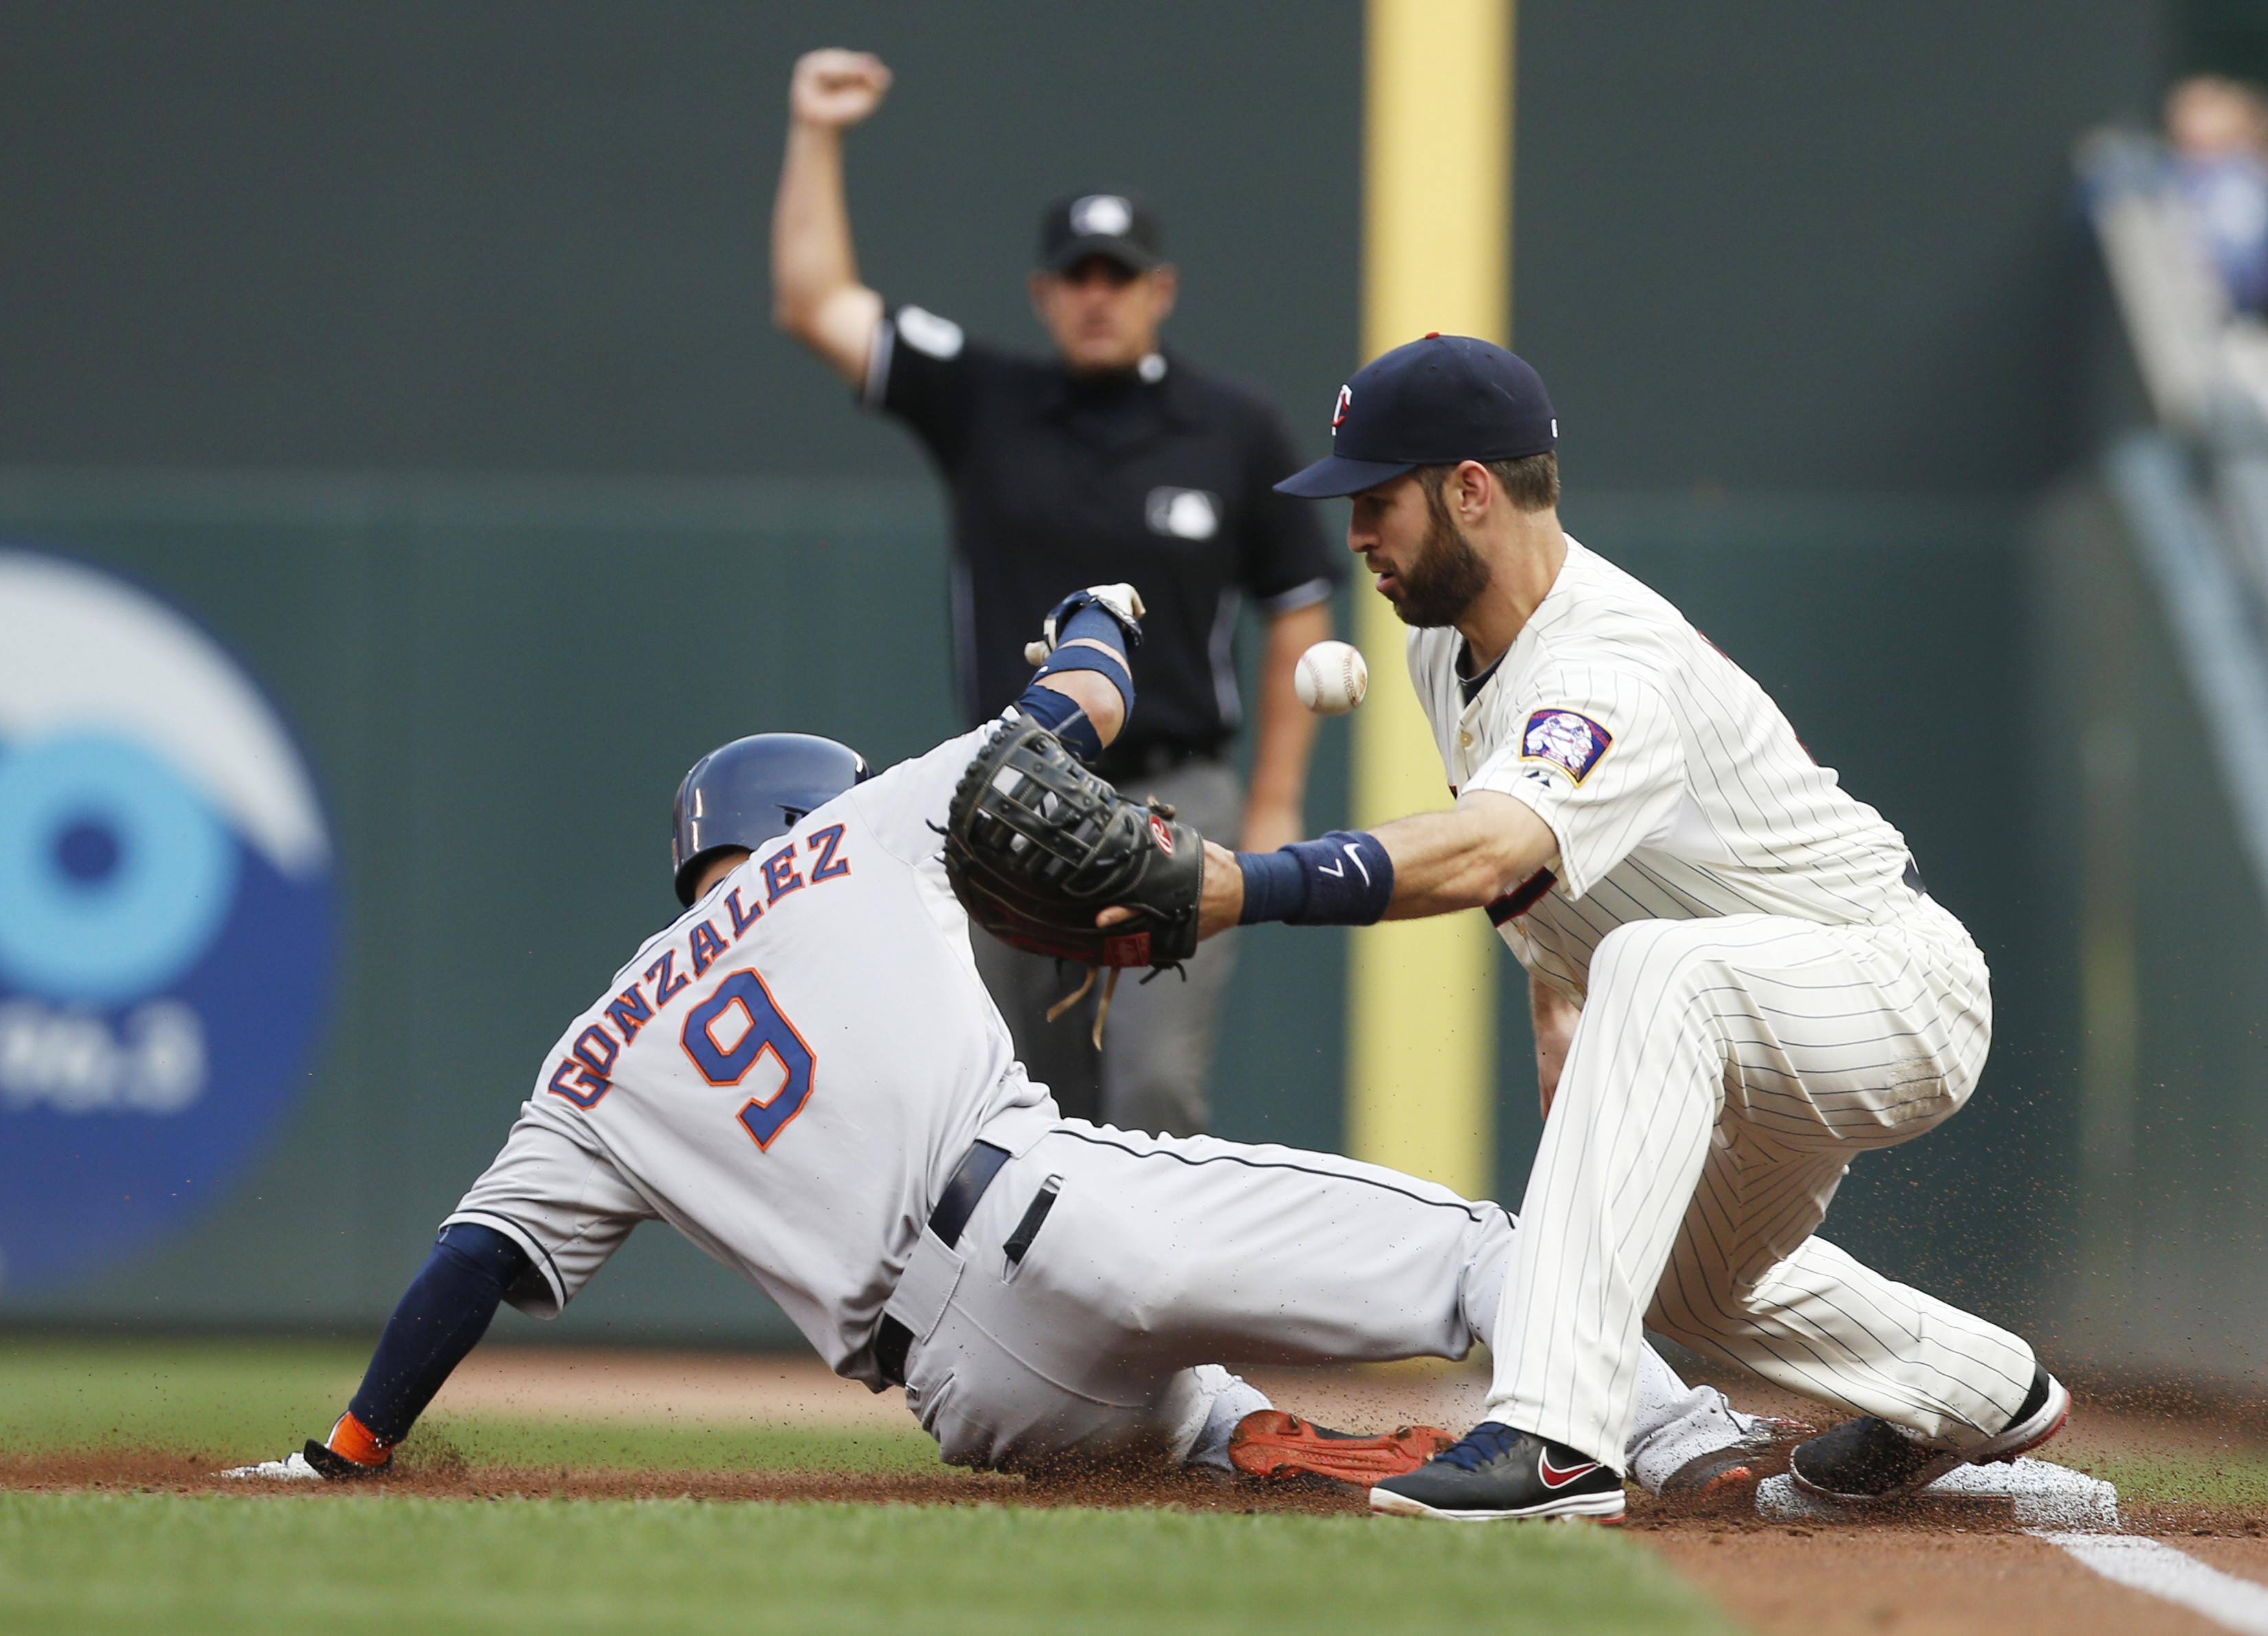 First base umpire Mark Ripperger makes an early out call on a double play attempt but Houston Astros' Marwin Gonzalez winds up safely at first when Minnesota Twins first baseman Joe Mauer can't handle the throw after Marvin Gonale flew out to center in th